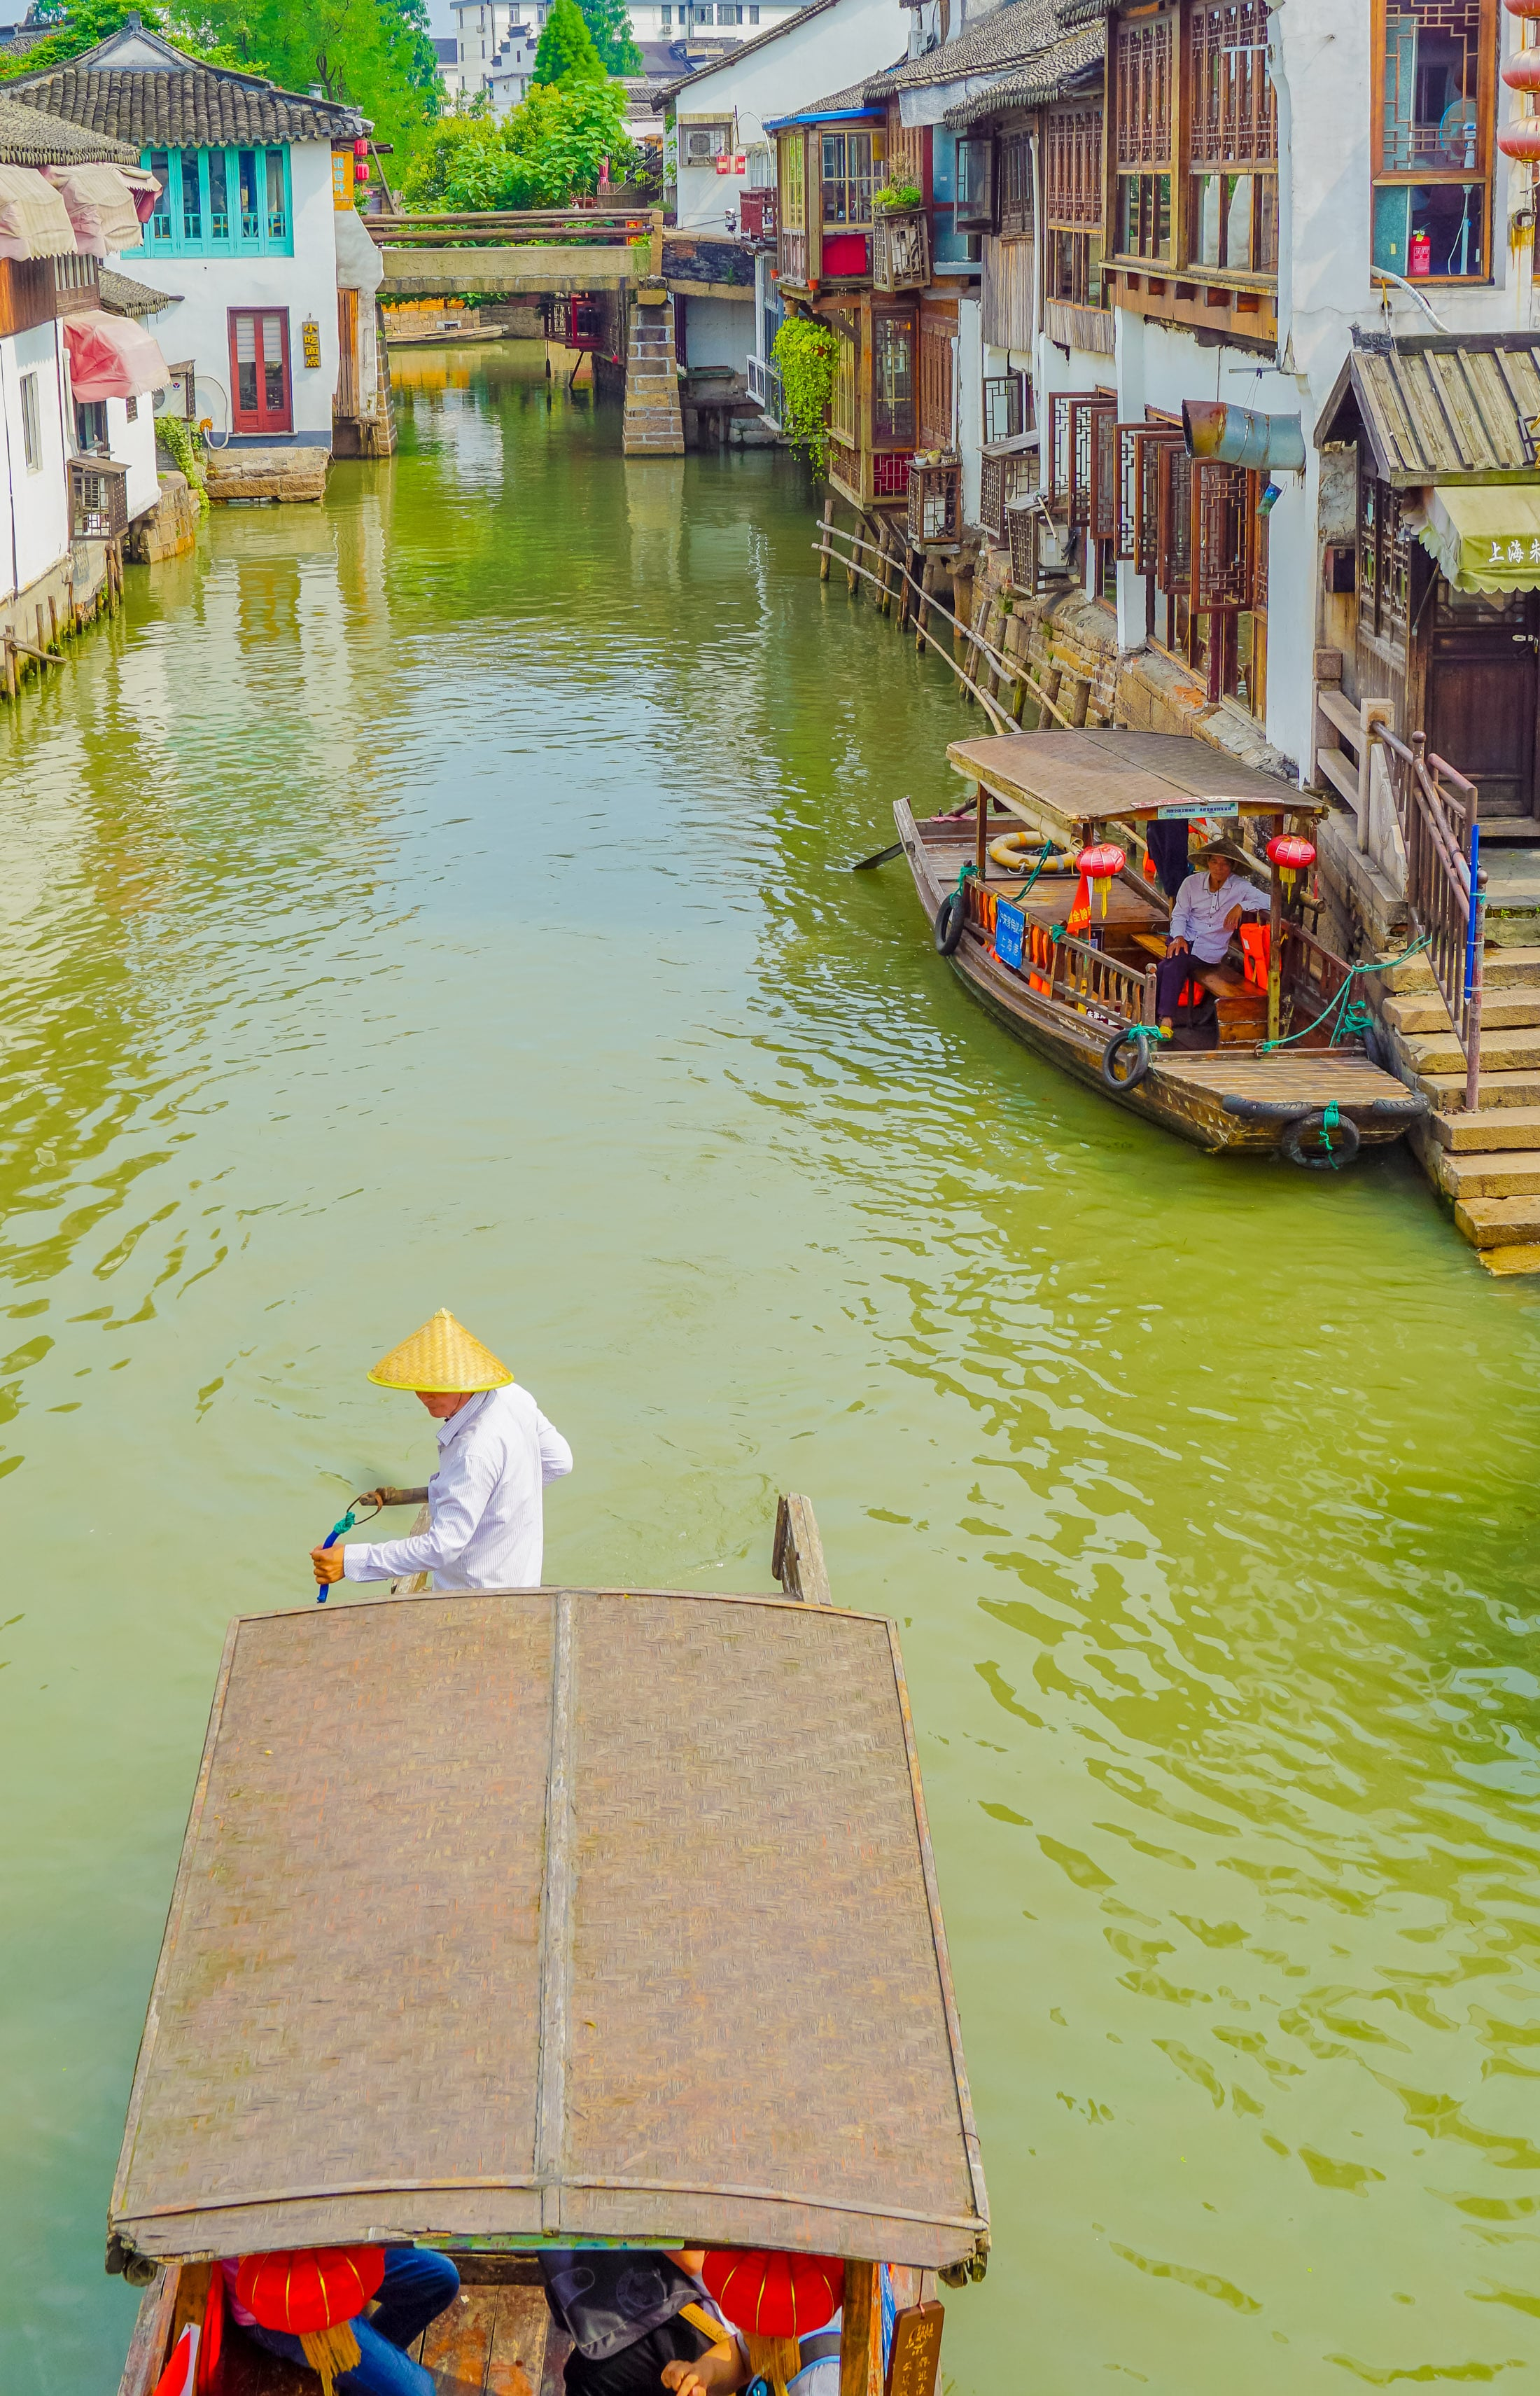 Take a boat ride at Zhujiajiao water town outside of Shanghai